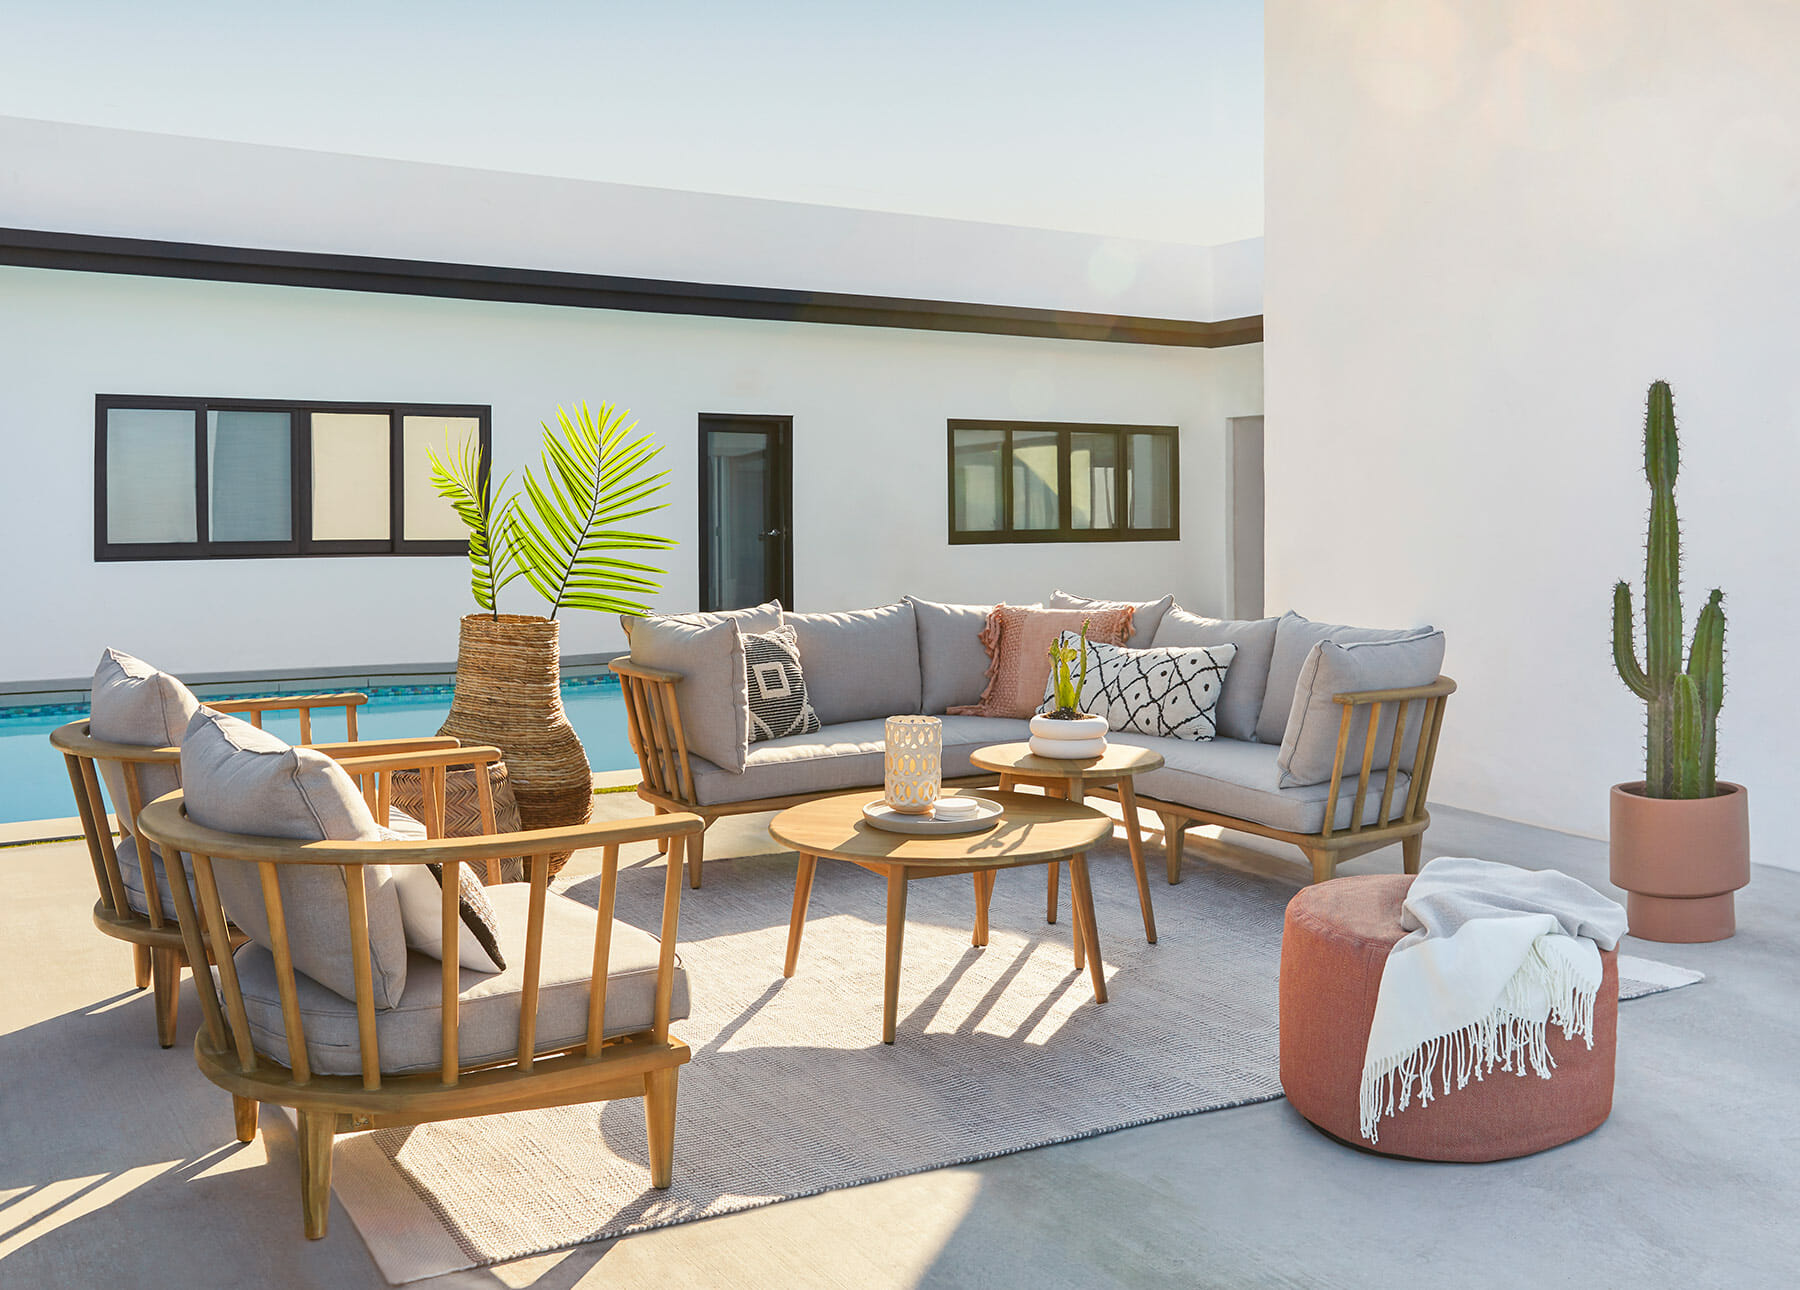 The Sora sectional and lounge chairs sit poolside.